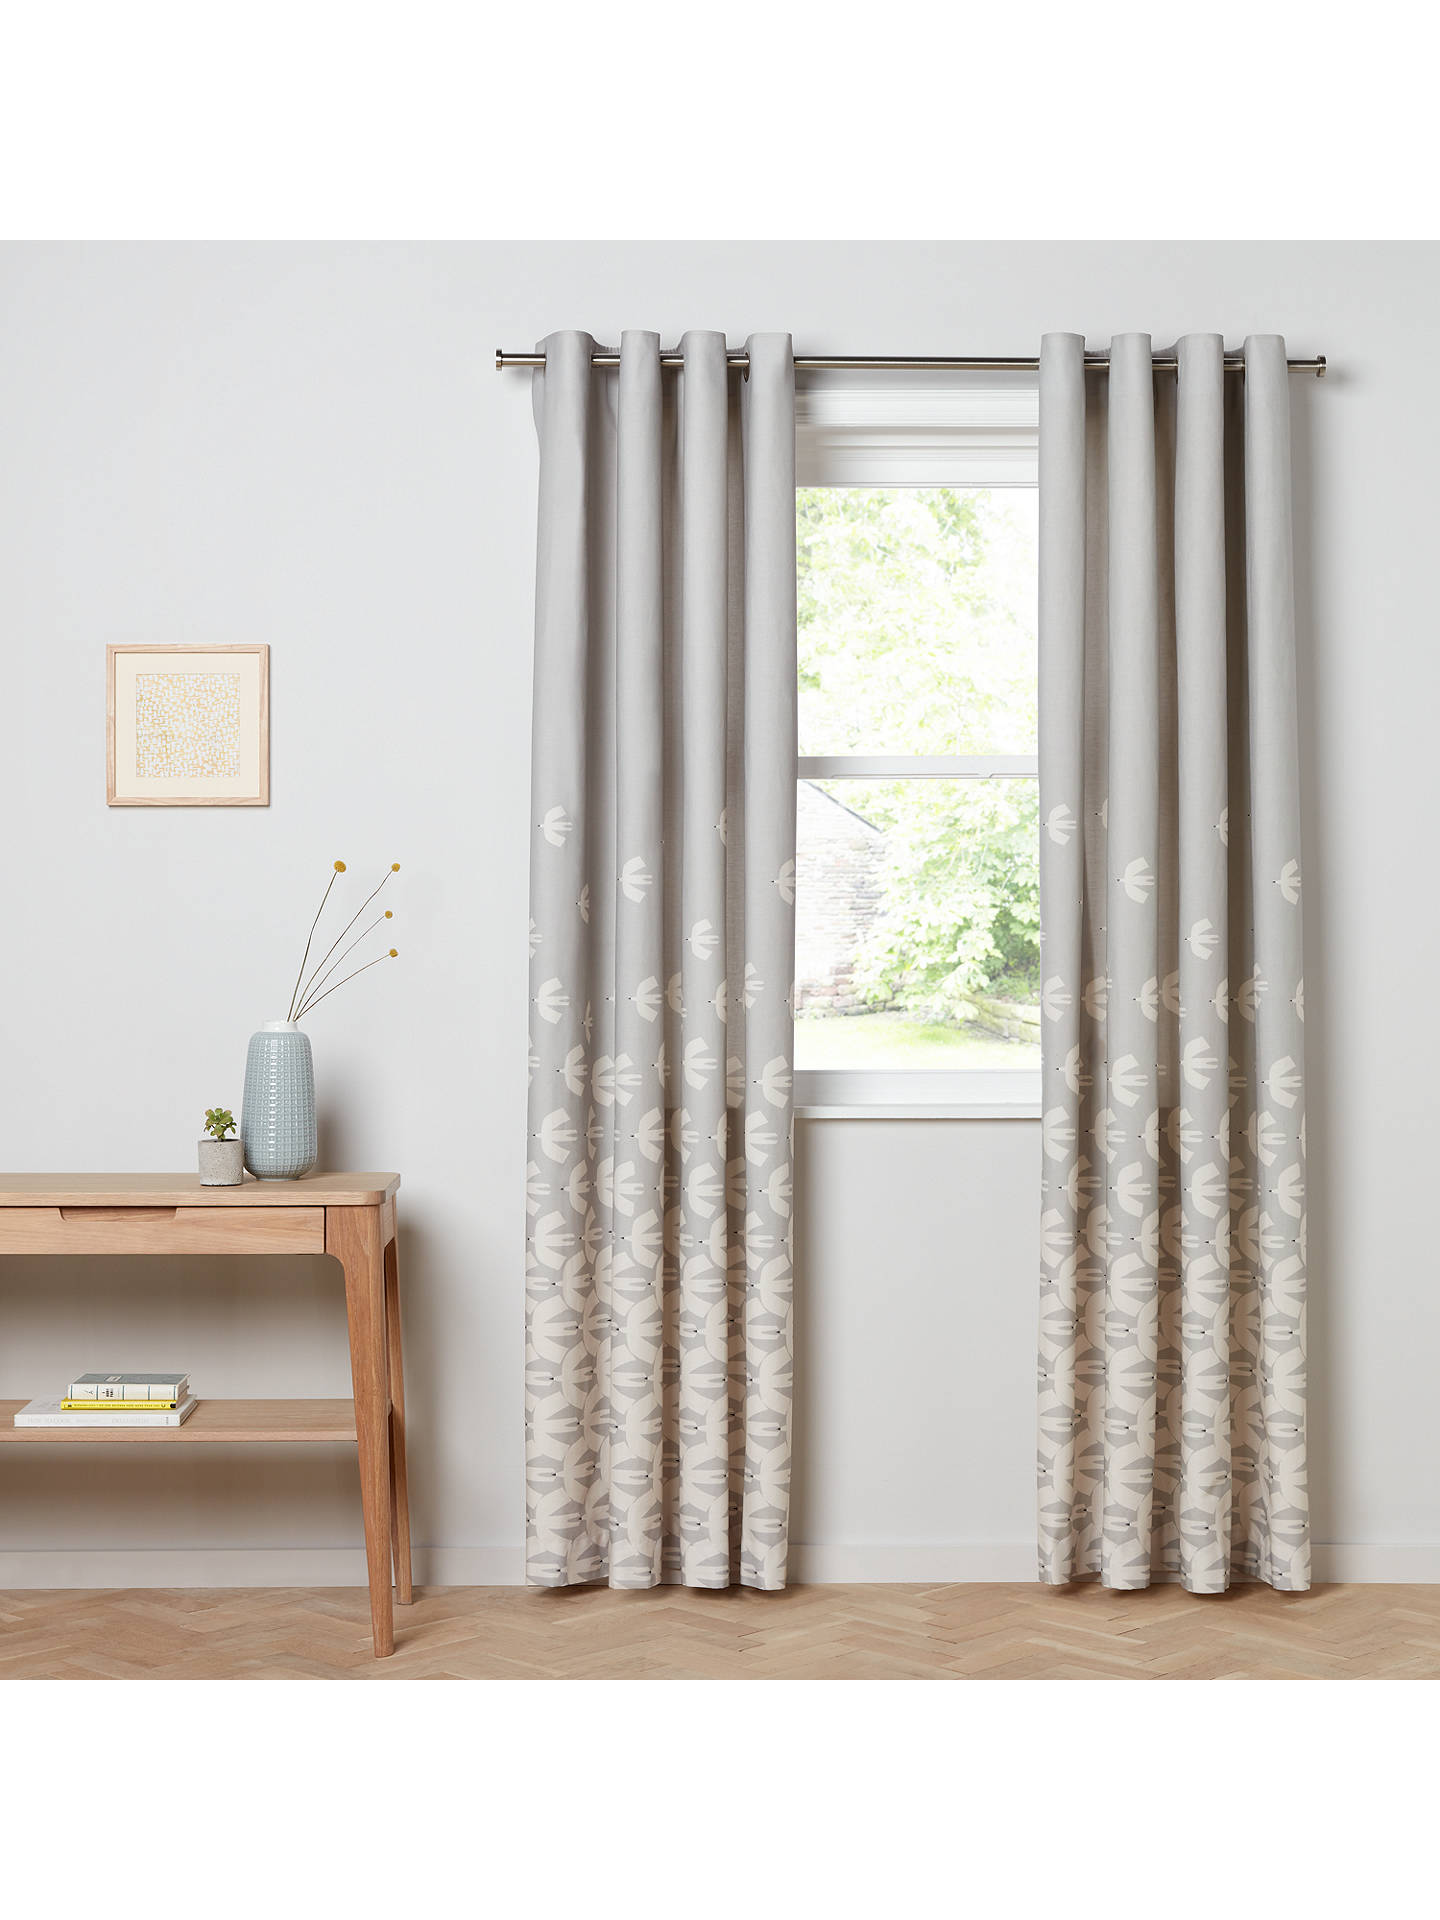 BuyScion Pajaro Lined Eyelet Curtains, Steel, W167 x Drop 137cm Online at johnlewis.com